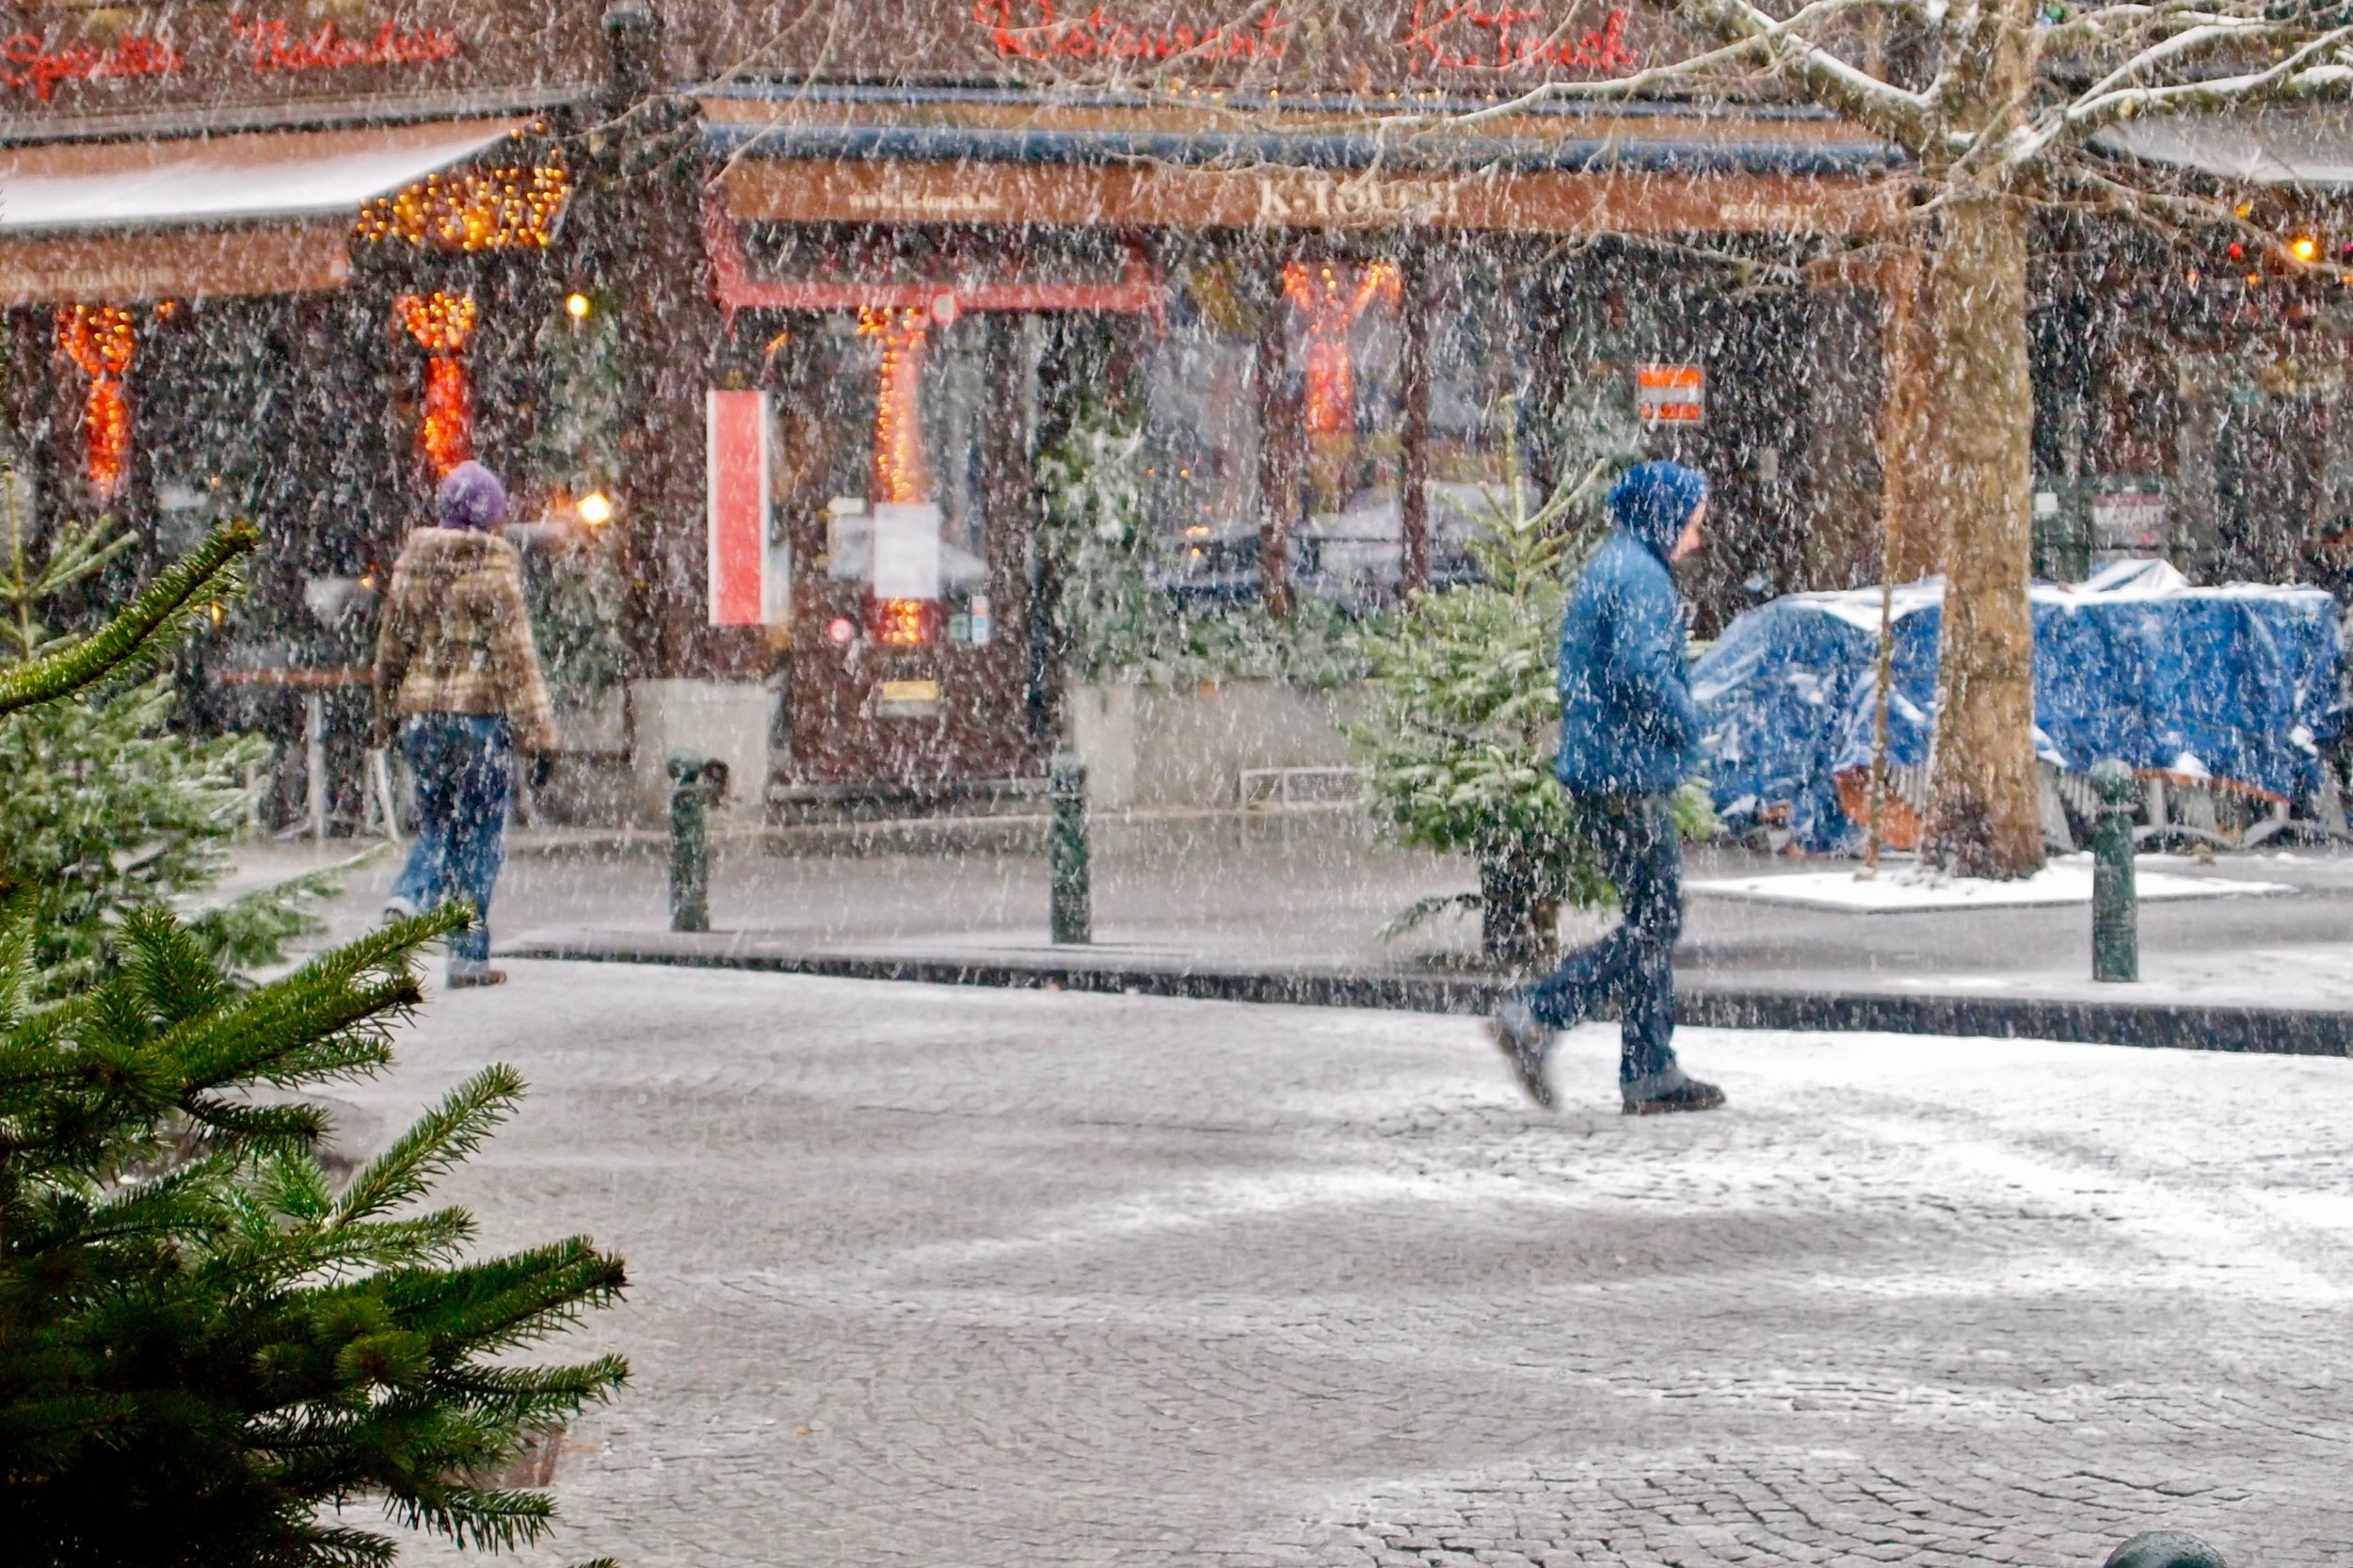 Winter in Brussels. Photo: (C) Remko Tanis